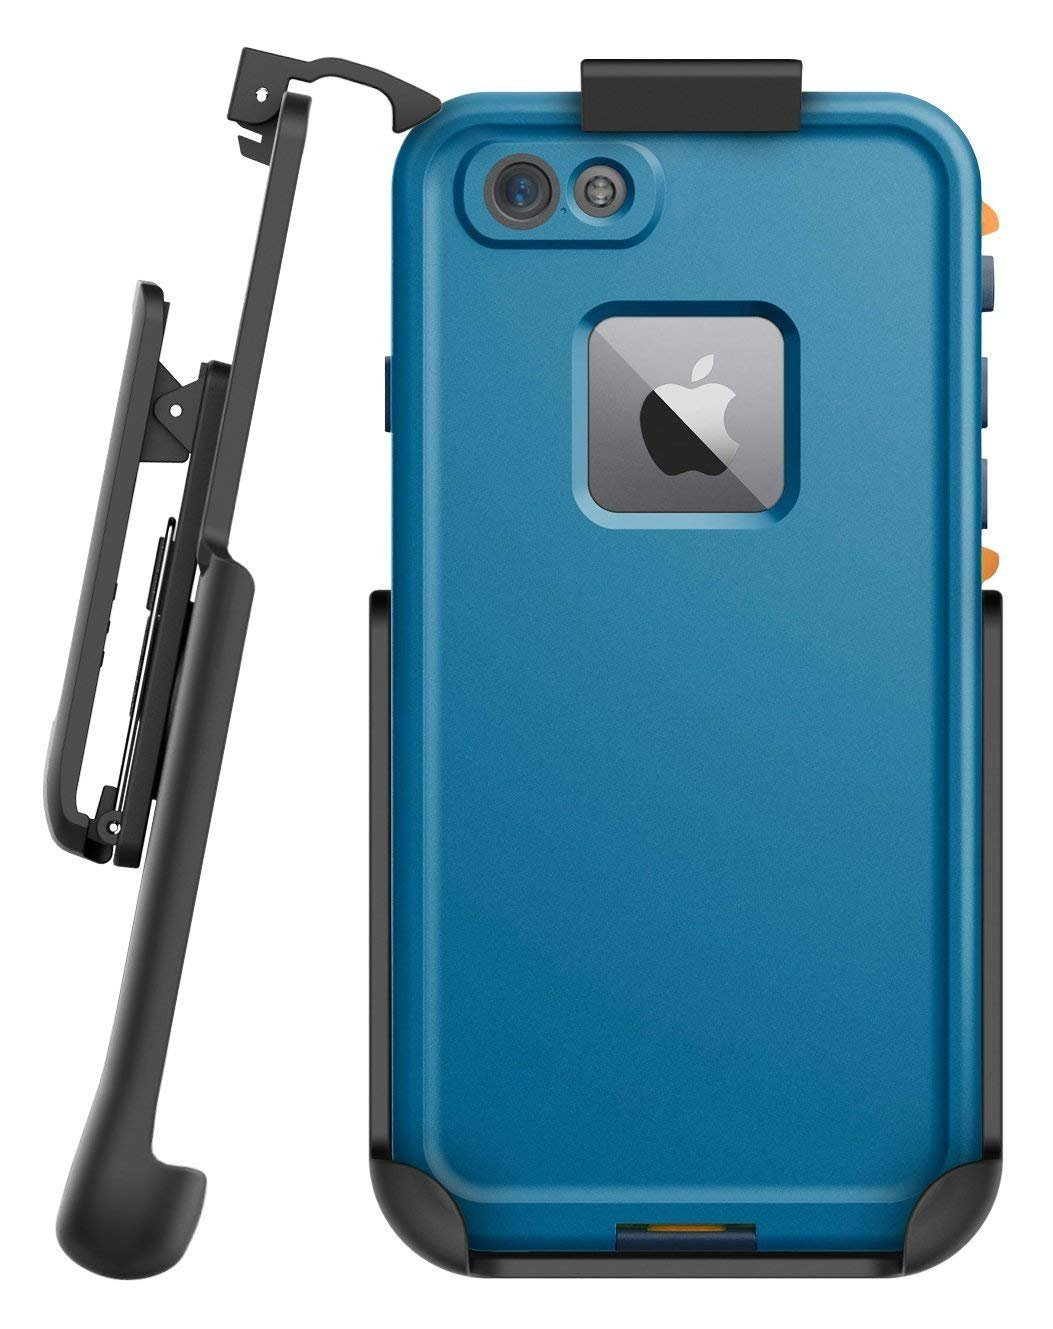 finest selection 6a90a 5ecd0 Encased Belt Clip Holster for LifeProof FRE - iPhone 6 Plus 5.5